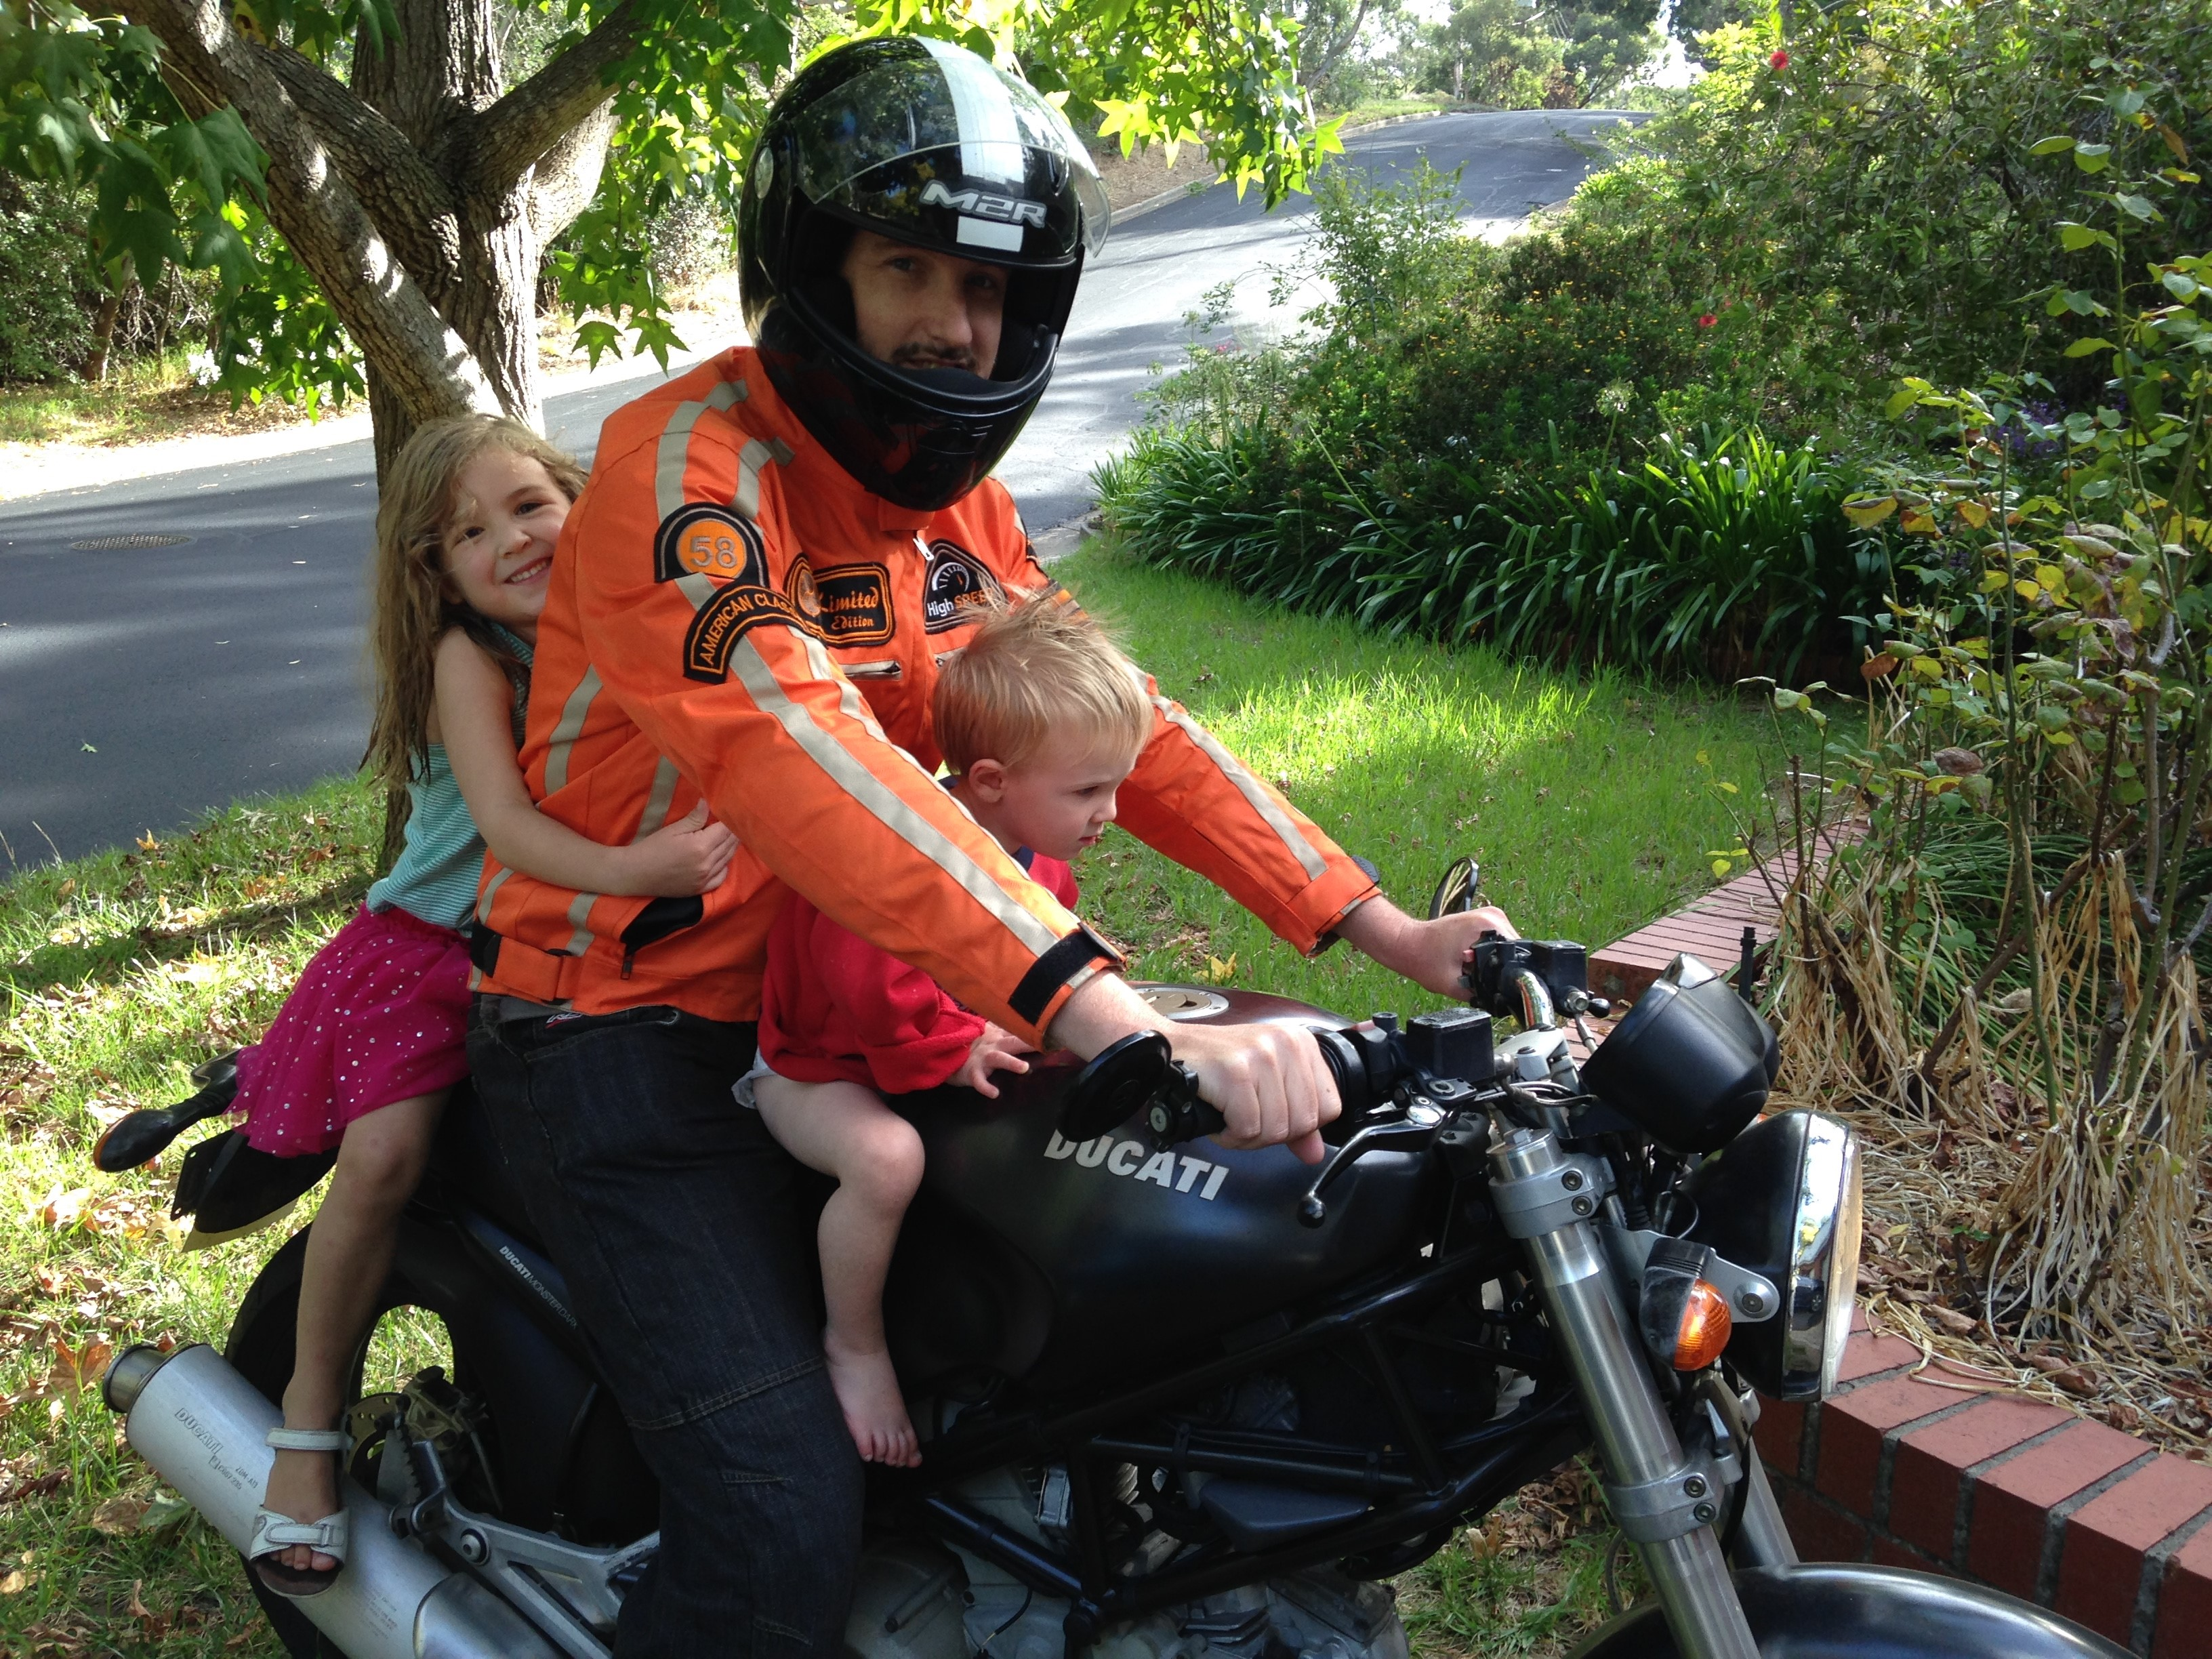 Leigh on his motorbike with his children, Zoe and Finn.